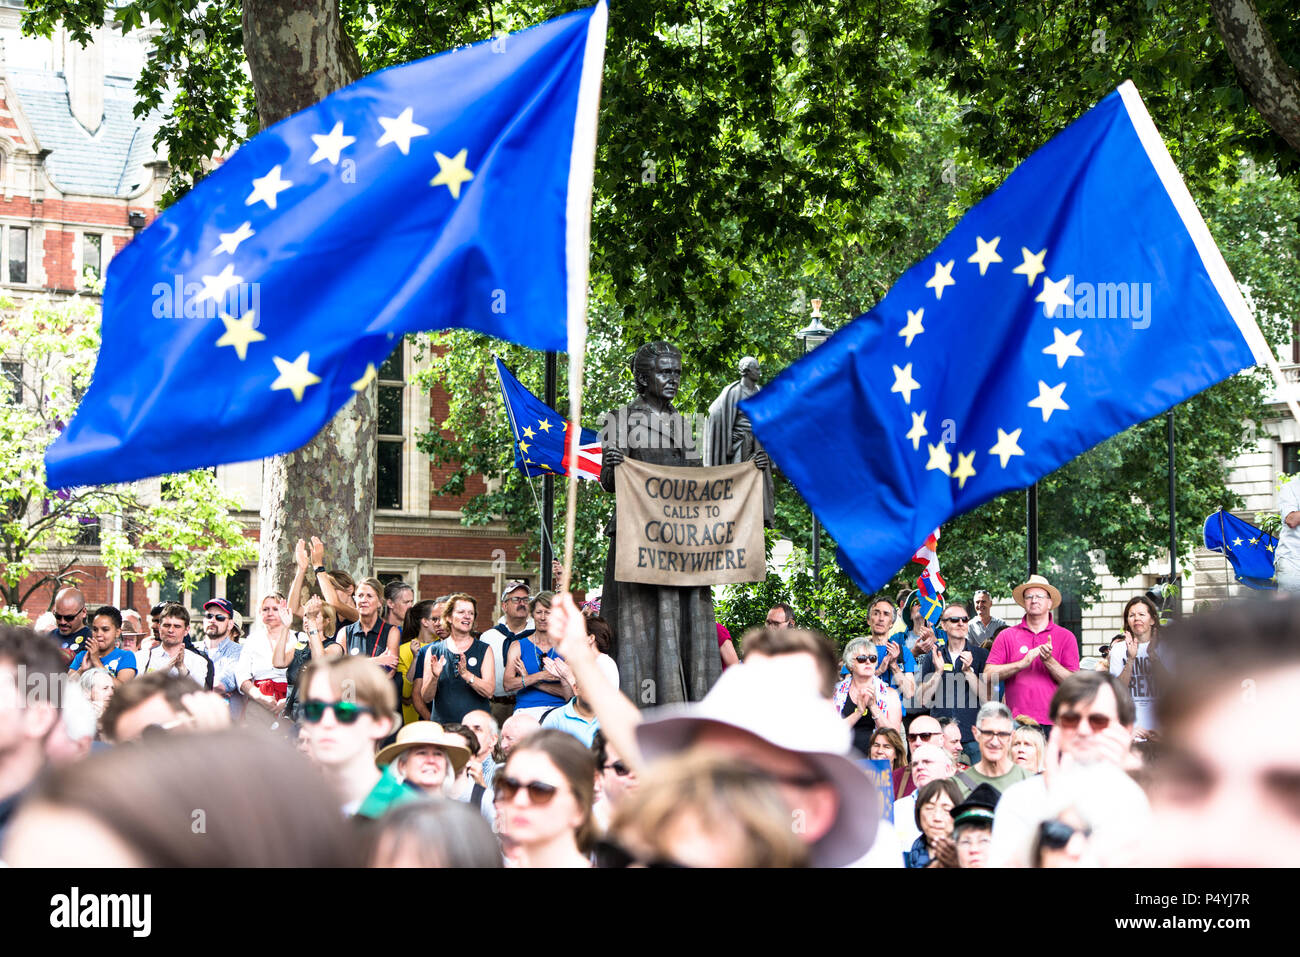 London, UK, UK. 23rd June, 2018. The statue of Millicent Fawcett between European Union Flags.A coalition of pro-EU groups organized a march to parliament to demand a People's Vote on Brexit deal and whatever the government proposes on its future relationship with the EU. Credit: Brais G. Rouco/SOPA Images/ZUMA Wire/Alamy Live News - Stock Image